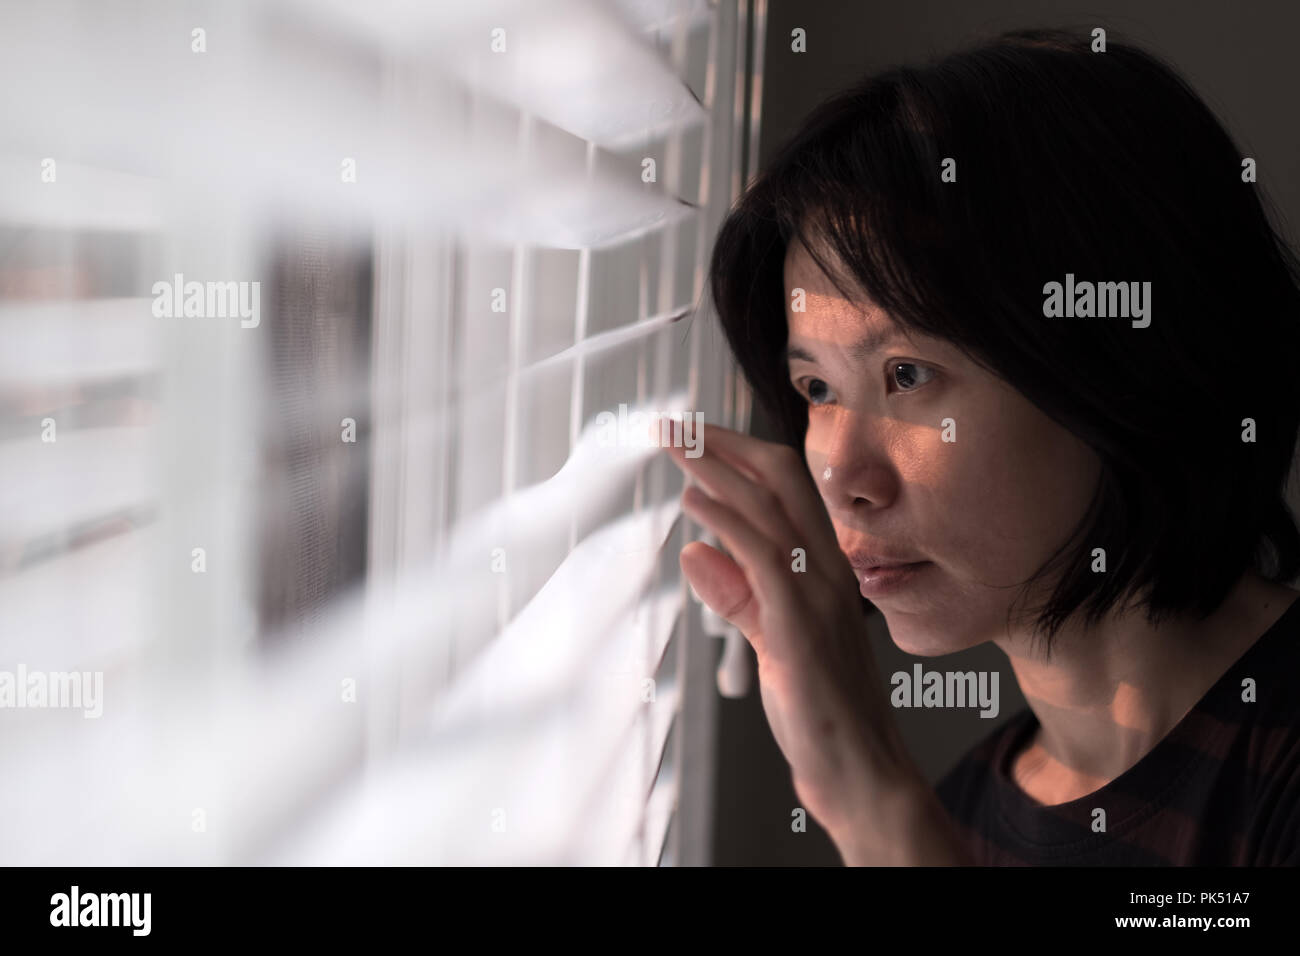 Portrait of young Asian woman peeking out of window Stock Photo